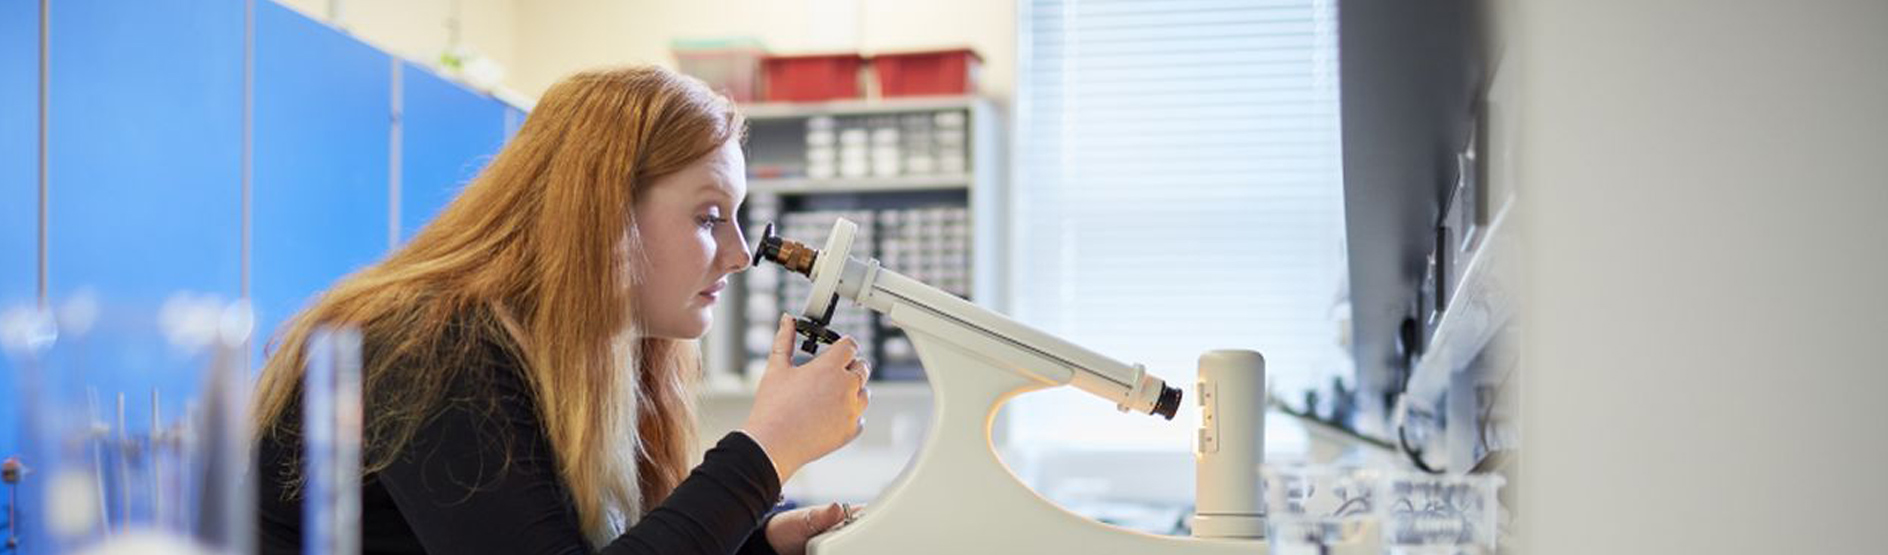 物理 female student with microscope in Lab